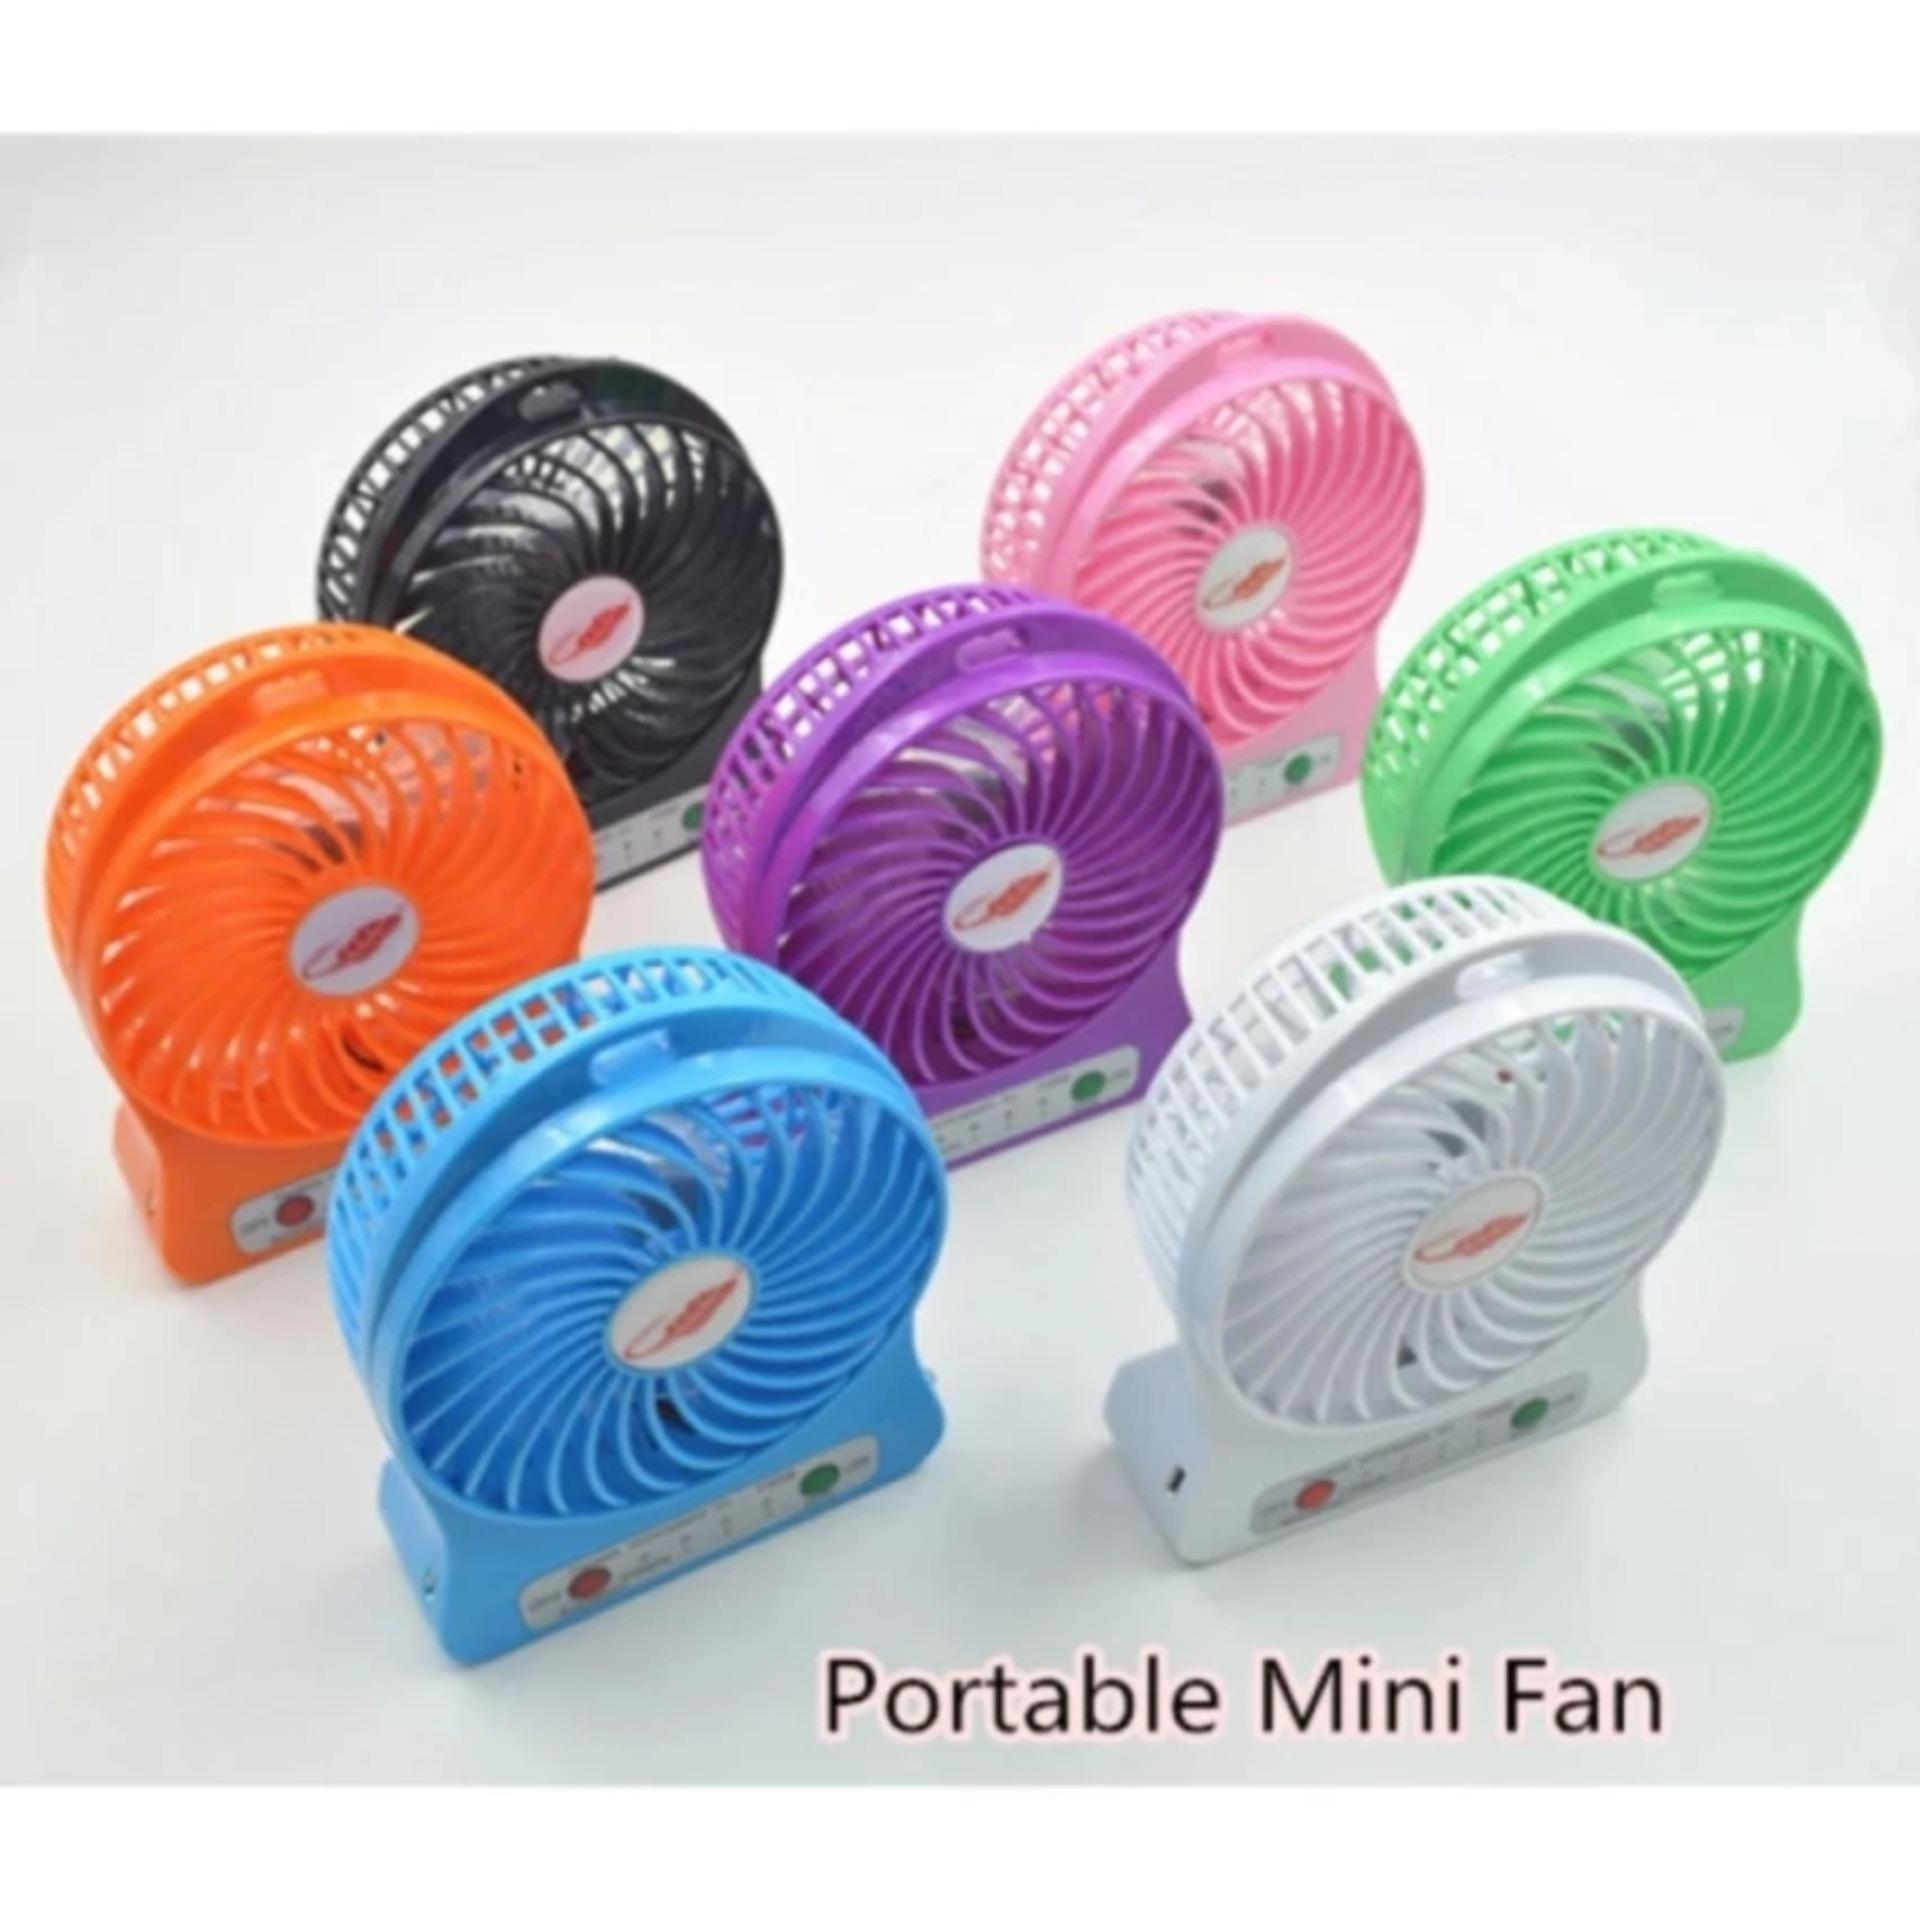 Review Kipas Angin Usb Mini Fan Portable Dengan Baterai Charger Mini Fan Portable